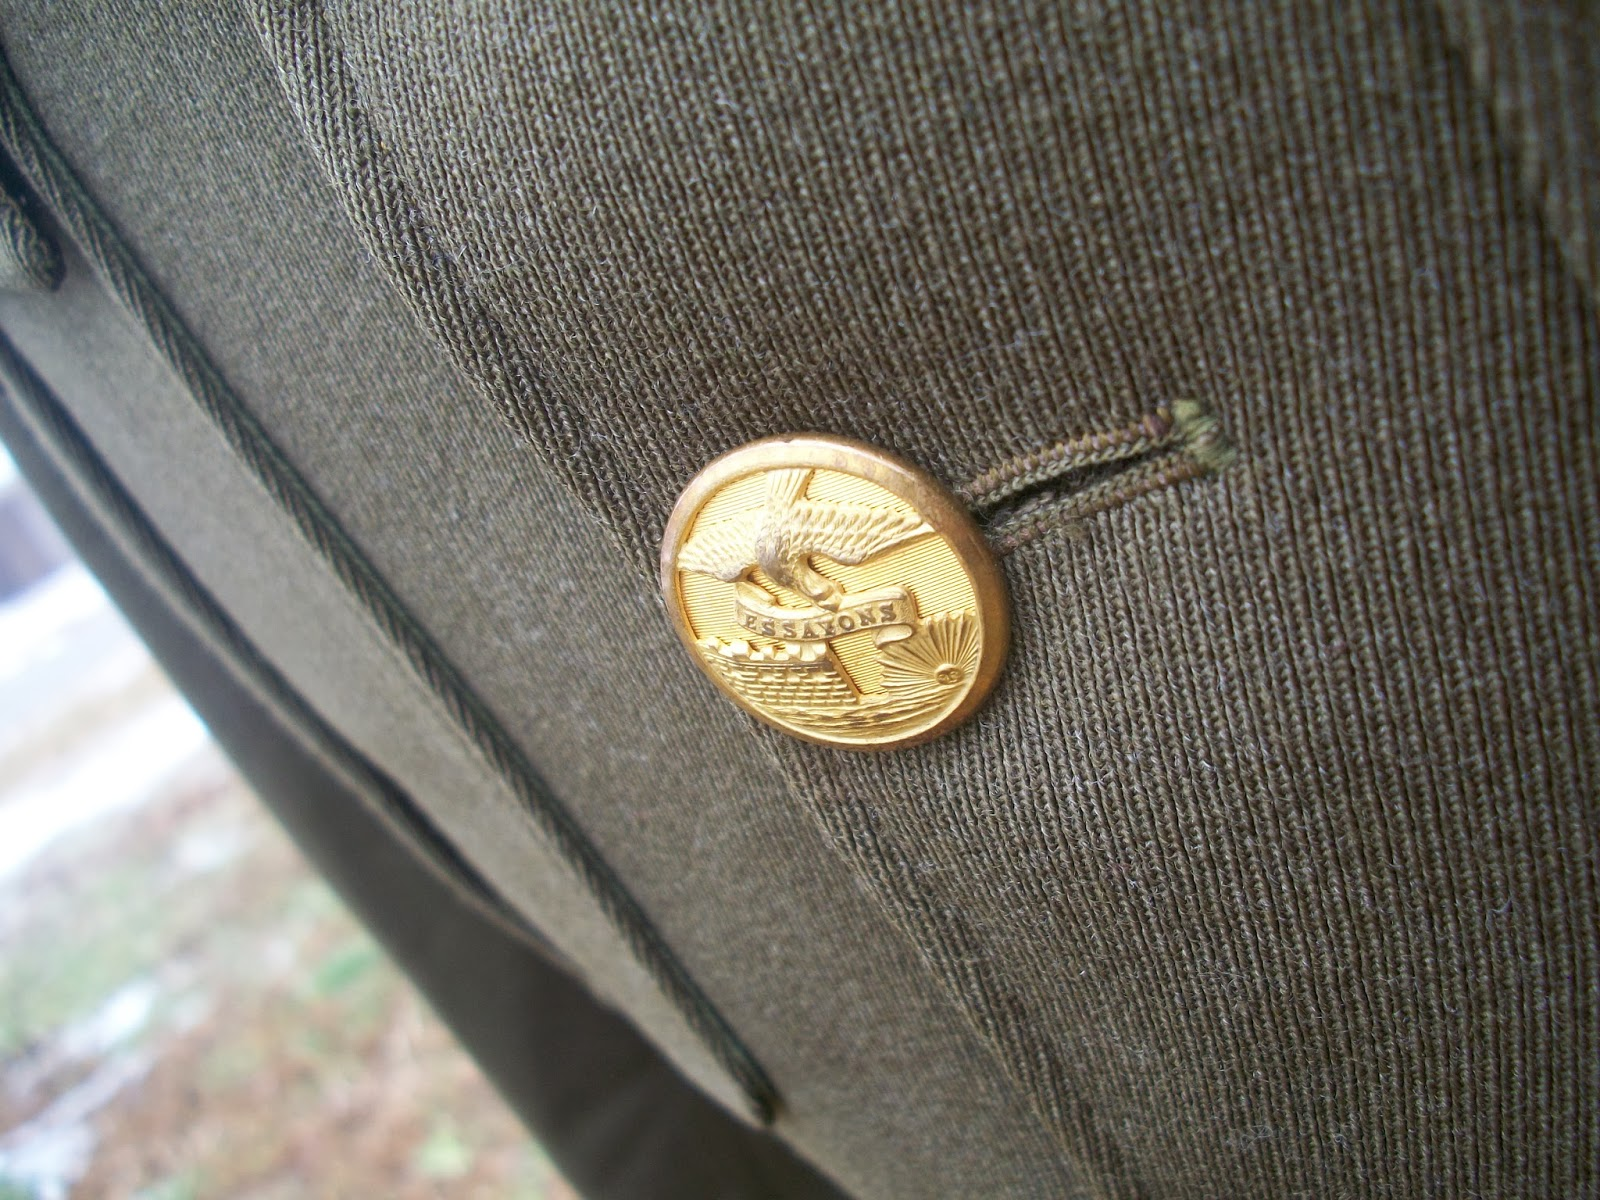 essayons button 12 x gaunt london army royal engineers gilt uniform buttons essayons design  featuring castle and bird - made by gaunt london they measure 15mm.